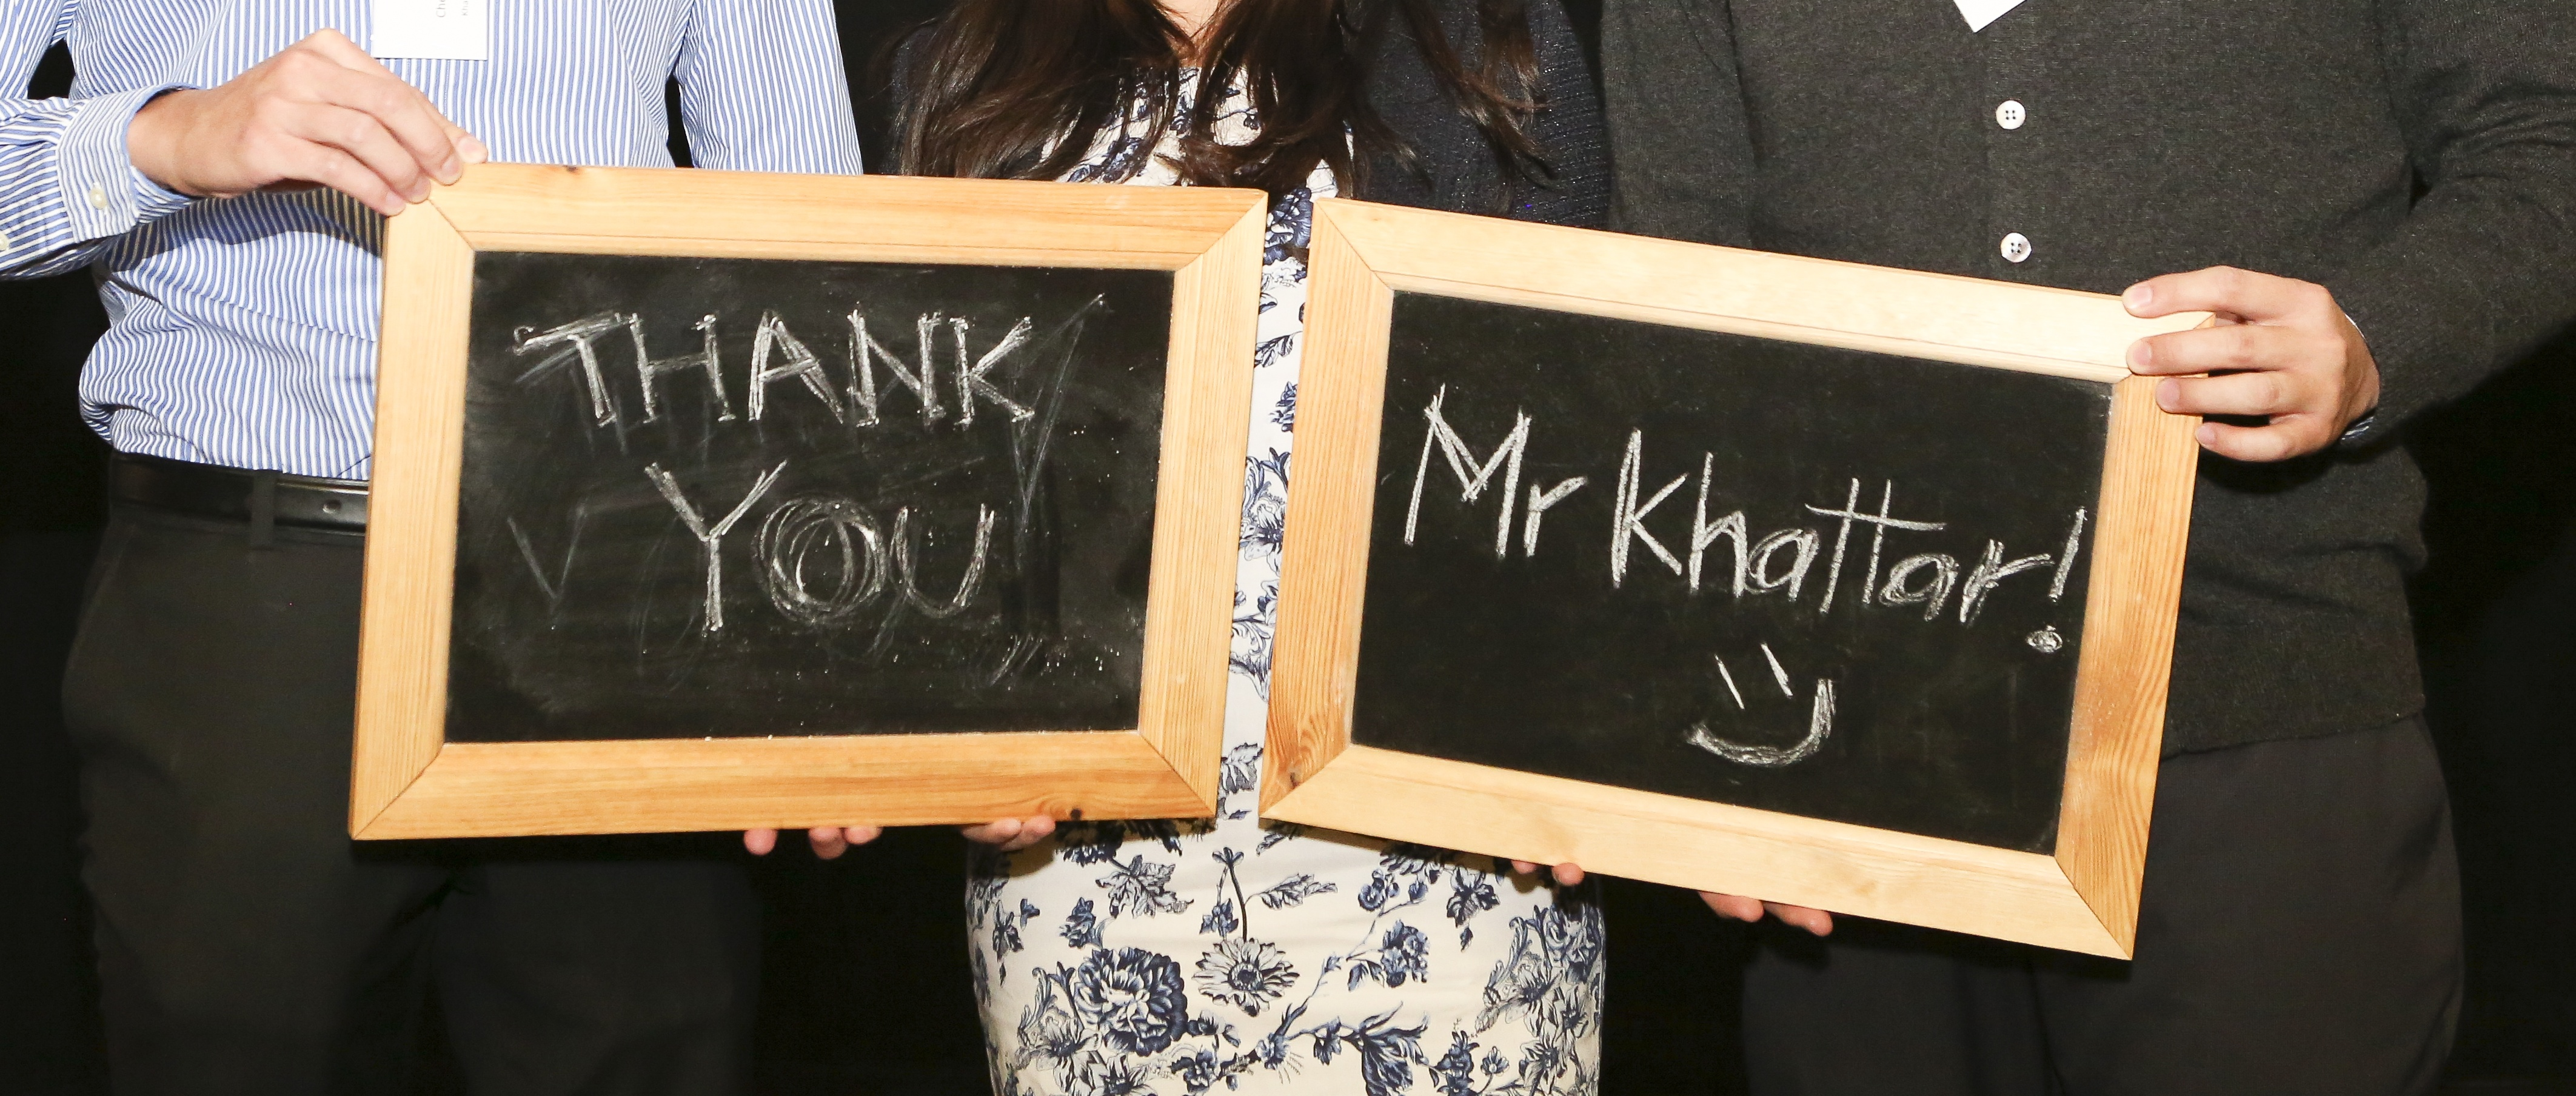 Scholars holding chalk boards thanking Mr Khattar